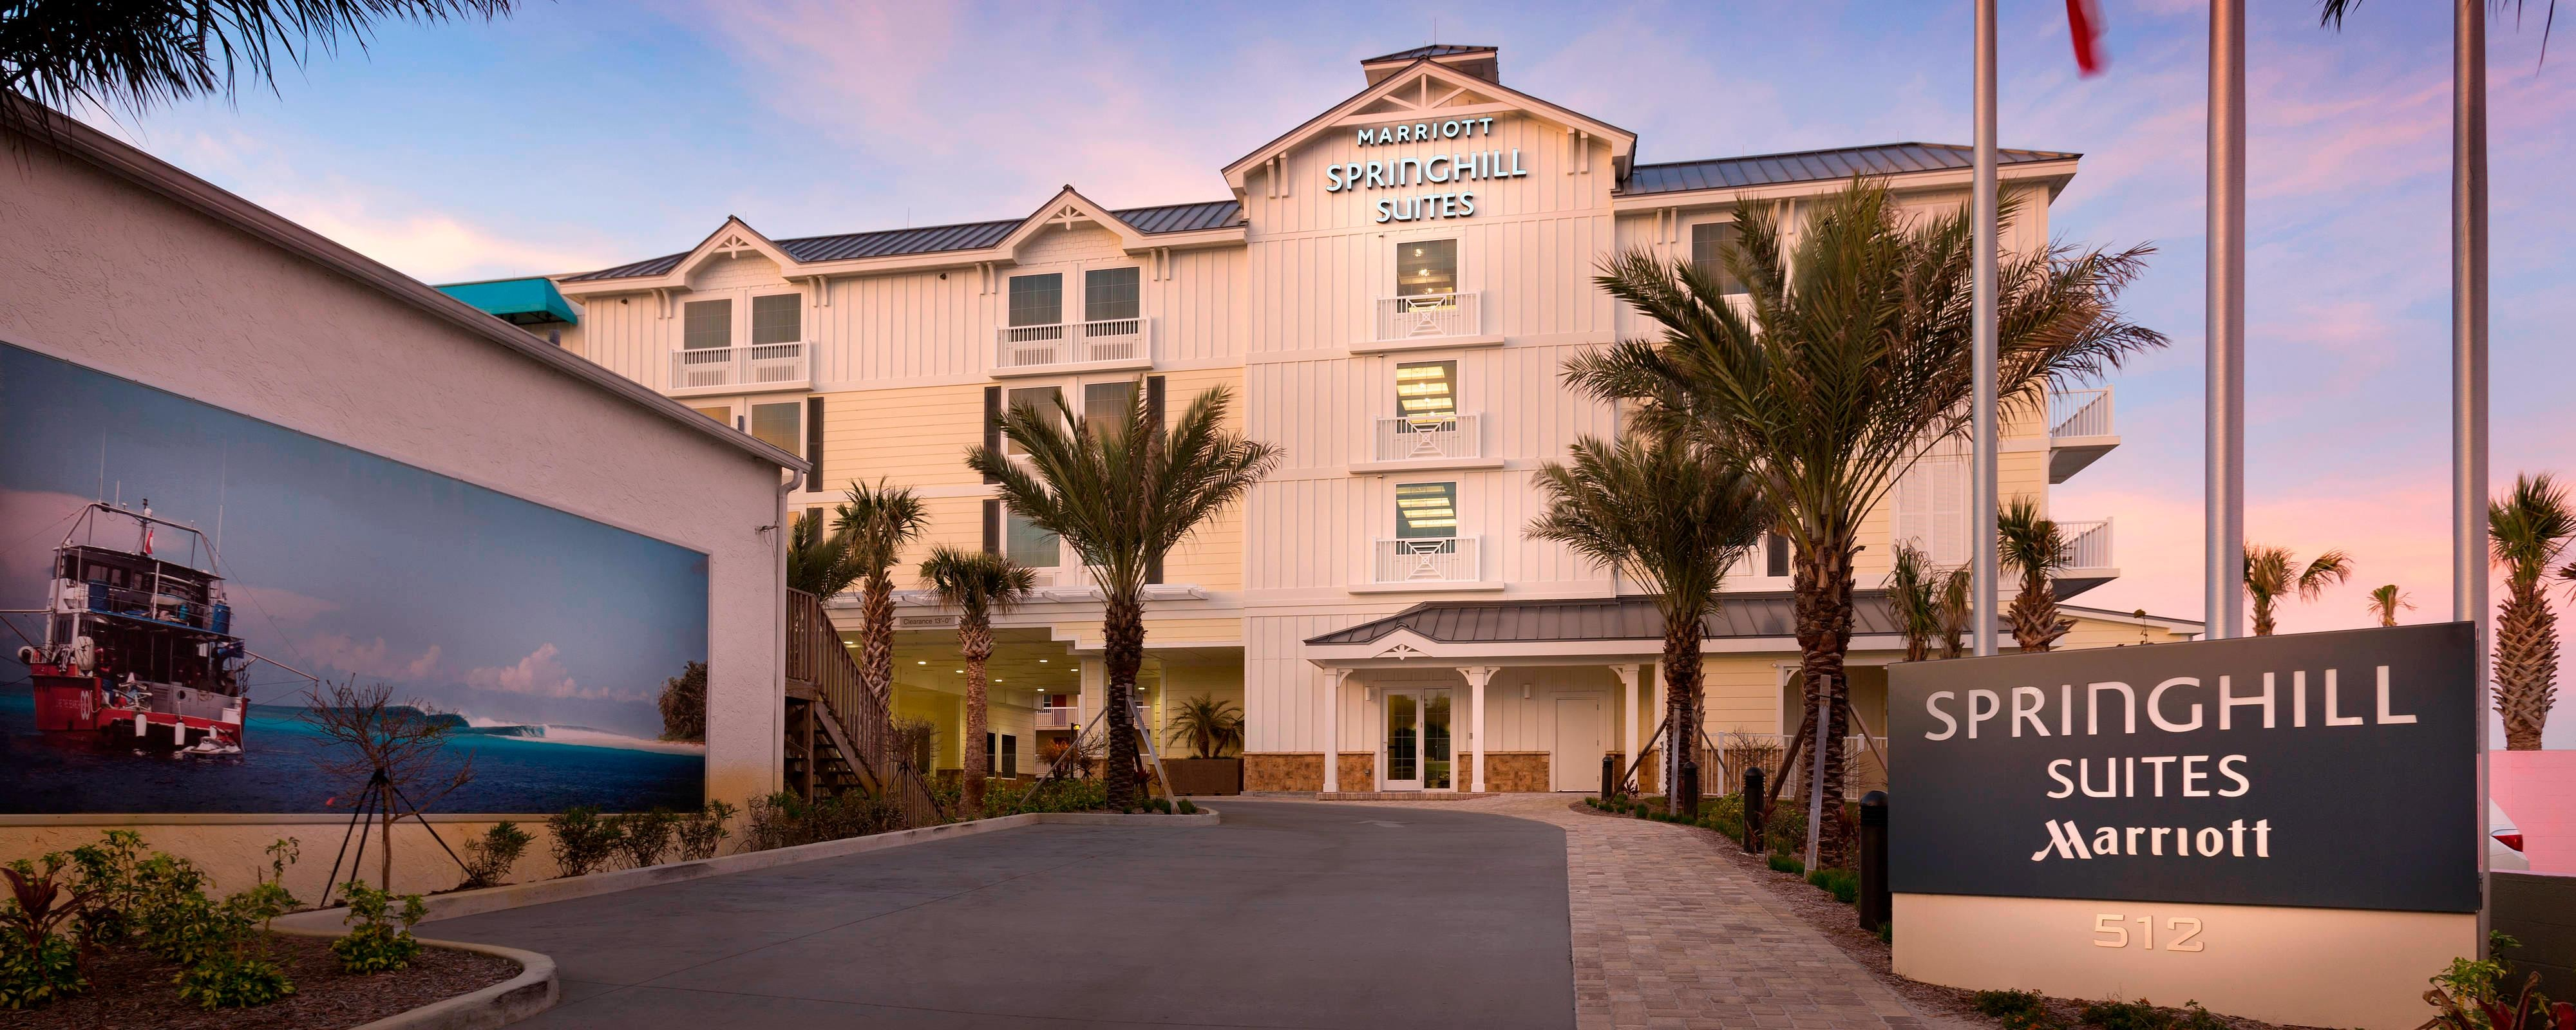 SpringHill Suites New Smyrna Beach: Suite Hotel in New Smyrna Beach